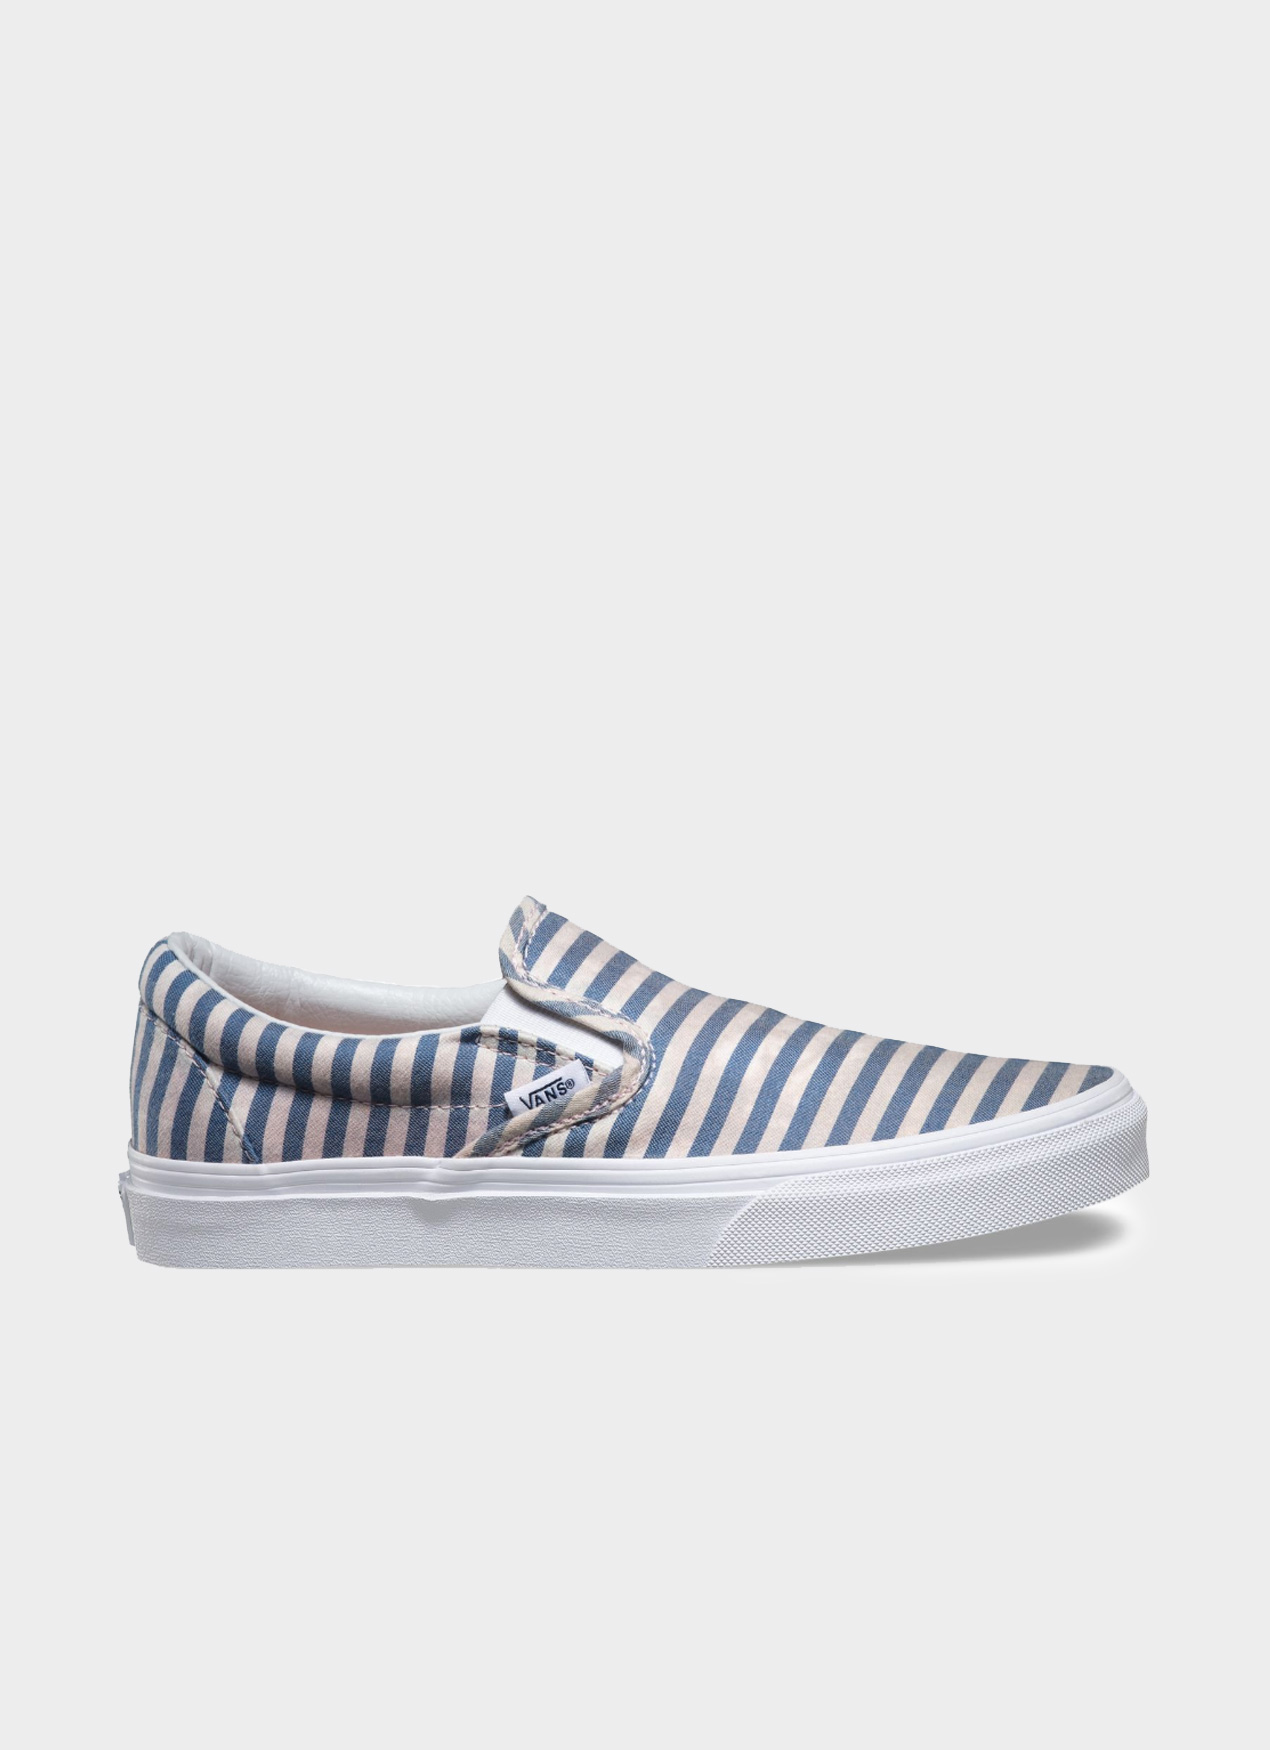 55e7234a5a49 Buy Original VANS Blue Stripes Classic Slip On (W) at Indonesia ...